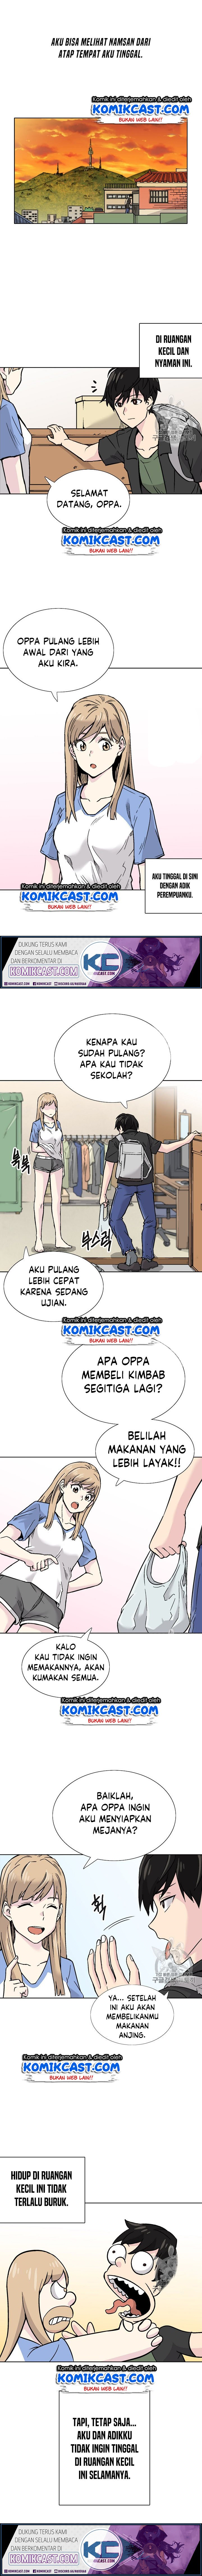 Spoiler Manhwa Escape From The Poverty by Catching Golem 1